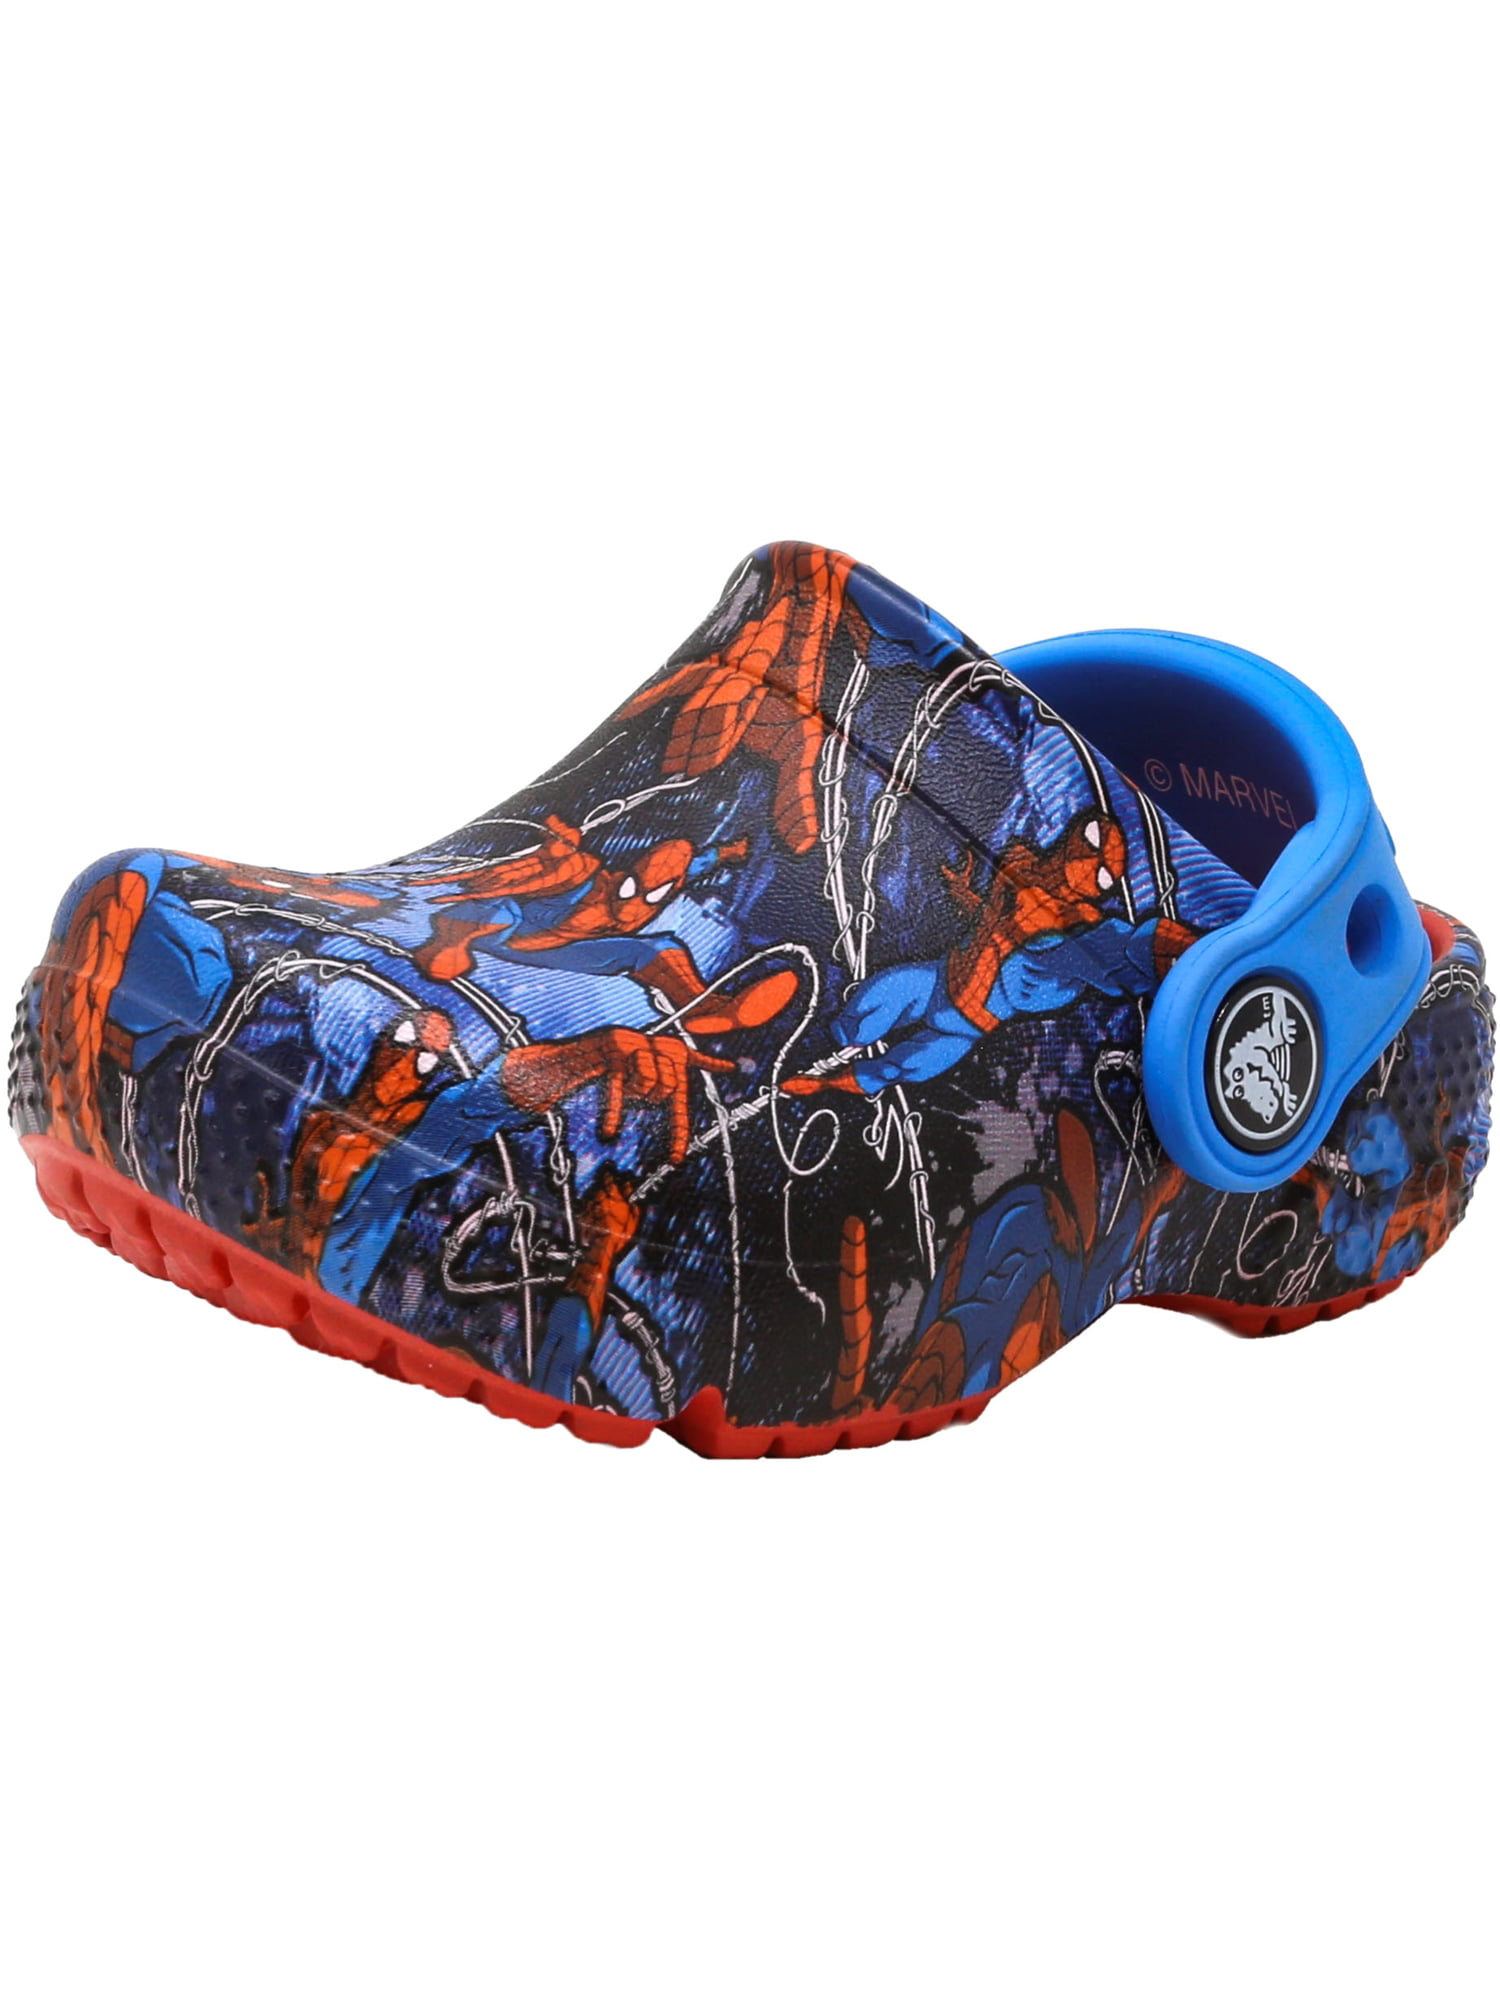 Crocs Crocsfunlab Spiderman Flame Ankle-High Clogs 5M by Crocs